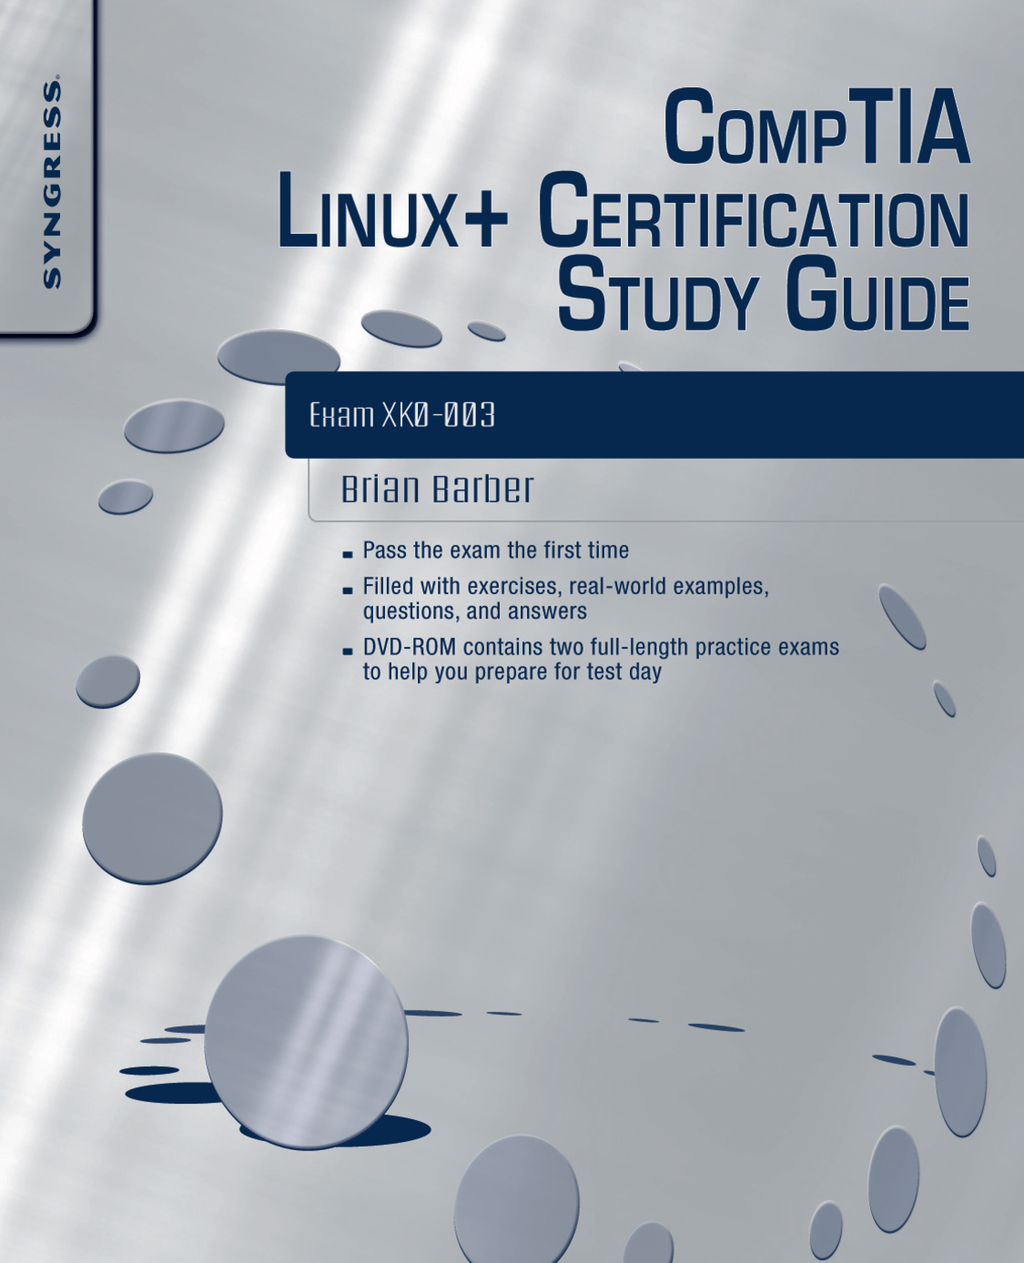 CompTIA Linux+ Certification Study Guide (2009 Exam) Exam XK0-003